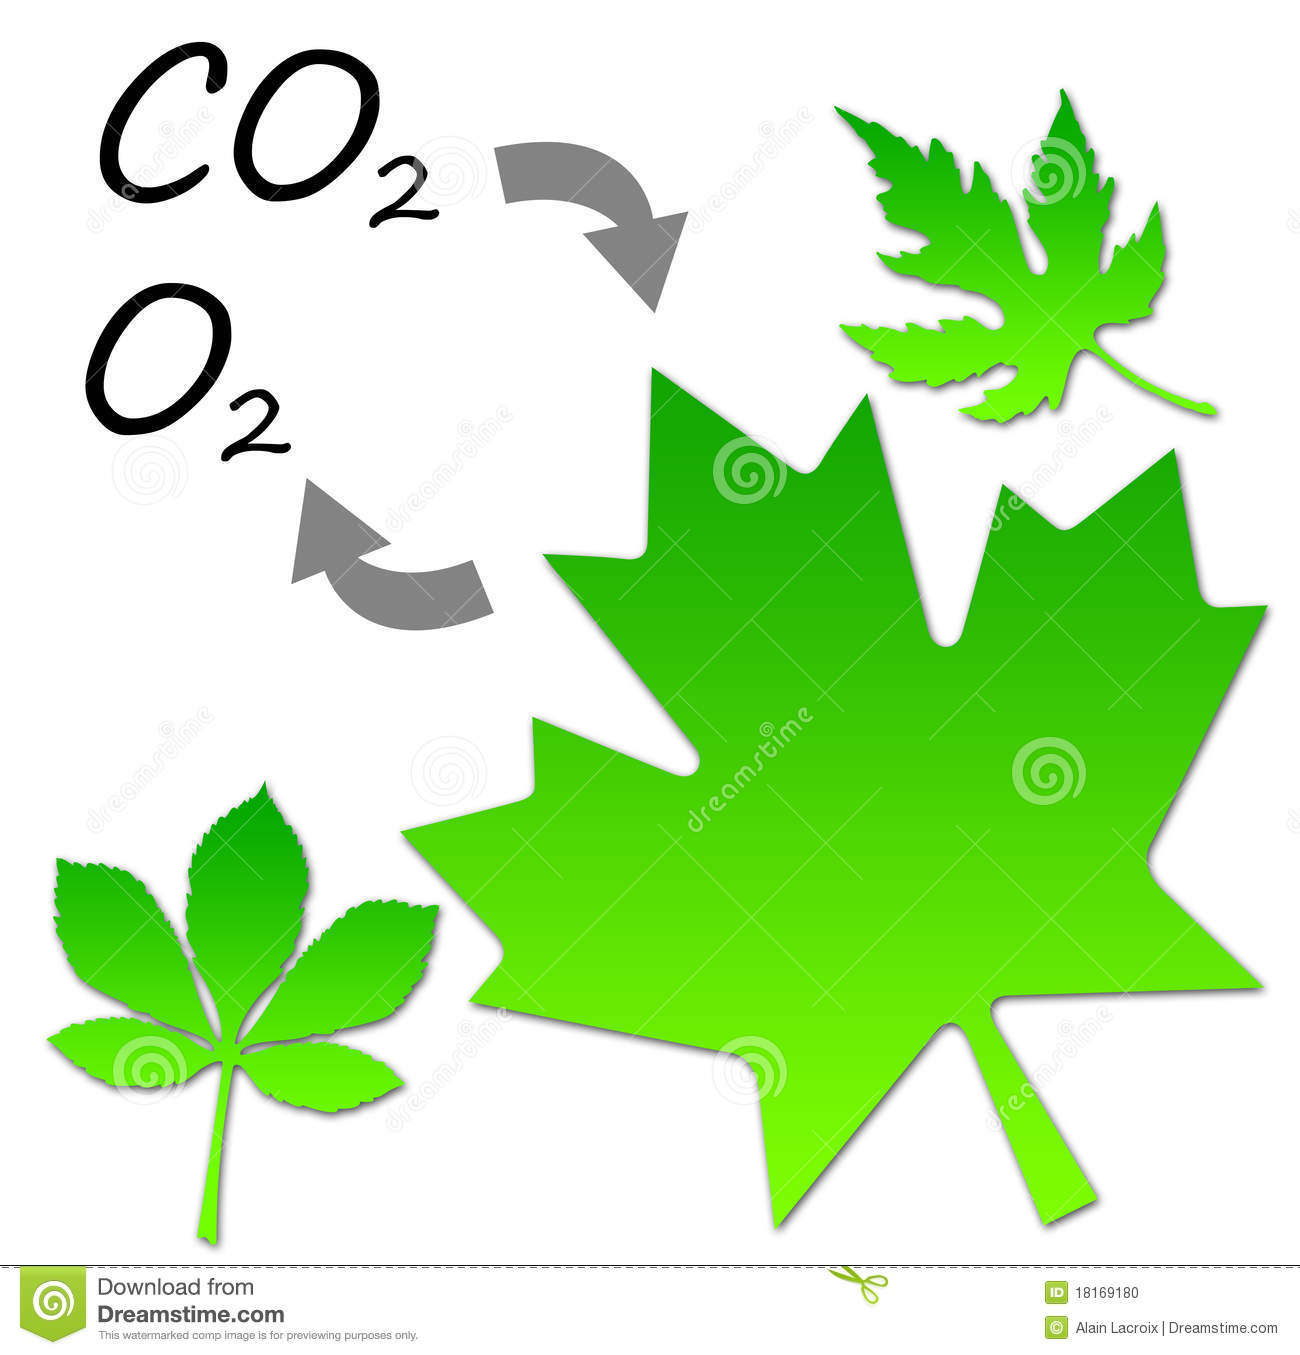 carbon dioxide and photosynthesis Carbon dioxide: plants as described in the carbon dioxide: overview section of this module, plants use carbon dioxide (co 2) during photosynthesis--the process by which plants transform the sun's energy into a chemical form and create carbohydrate (c 6 h 12 o 6) molecules.